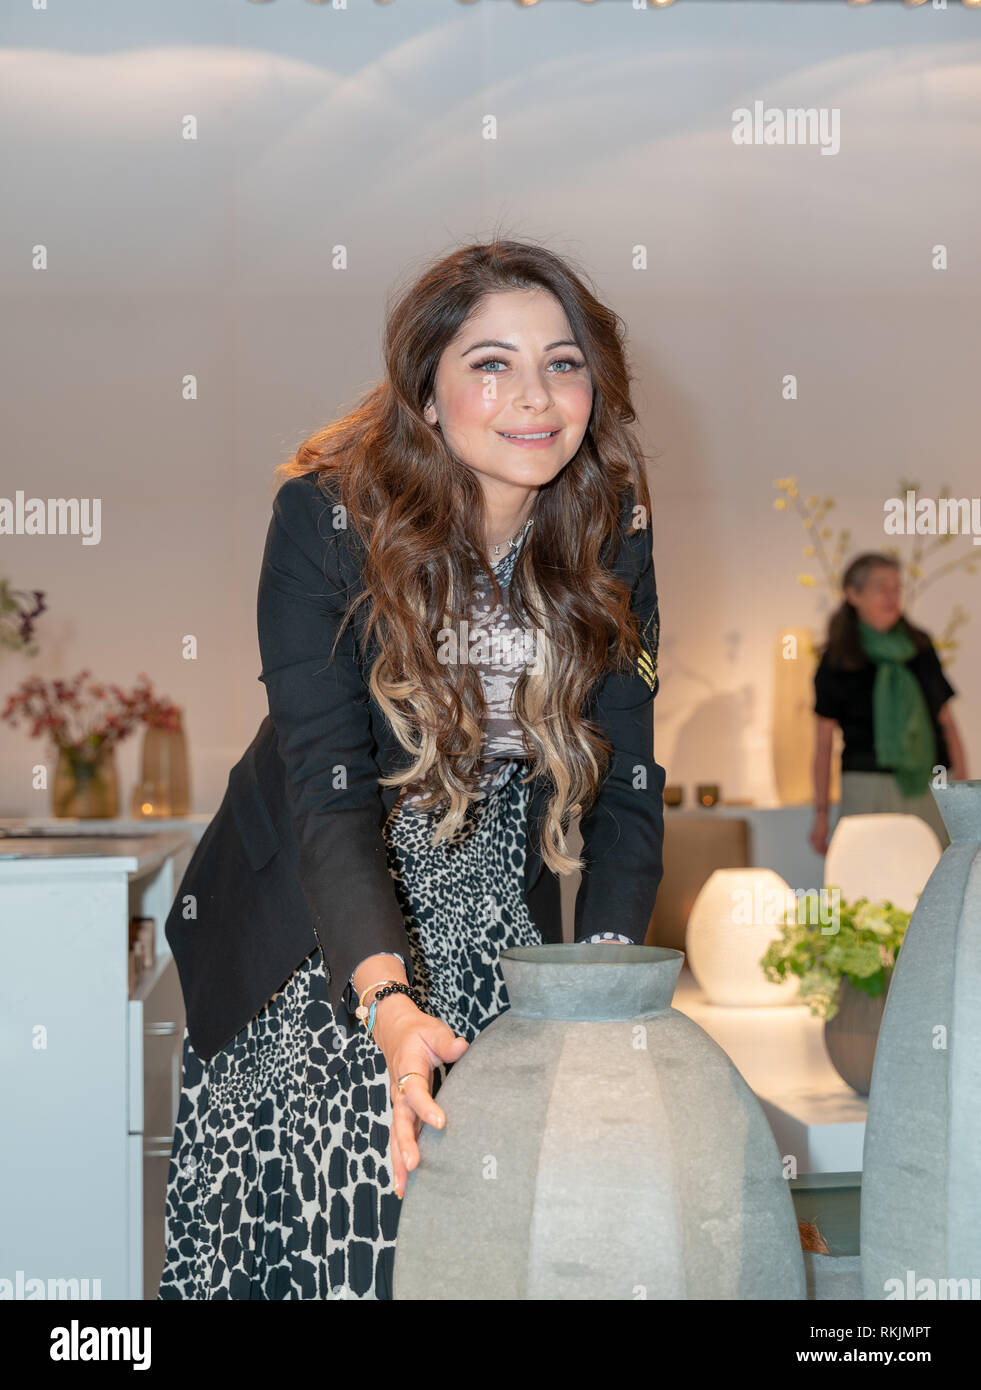 Frankfurt, Germany. 11th Feb, 2019. Kanika Kapoor, singer, bollywood star and The Voice India Coach visits Ambiente trade fair 2019. Ambiente is a leading consumer goods trade fair with more than 4300 exhibitors and 130,000  trade visitors. Credit: Markus Wissmann/Alamy Live News Stock Photo